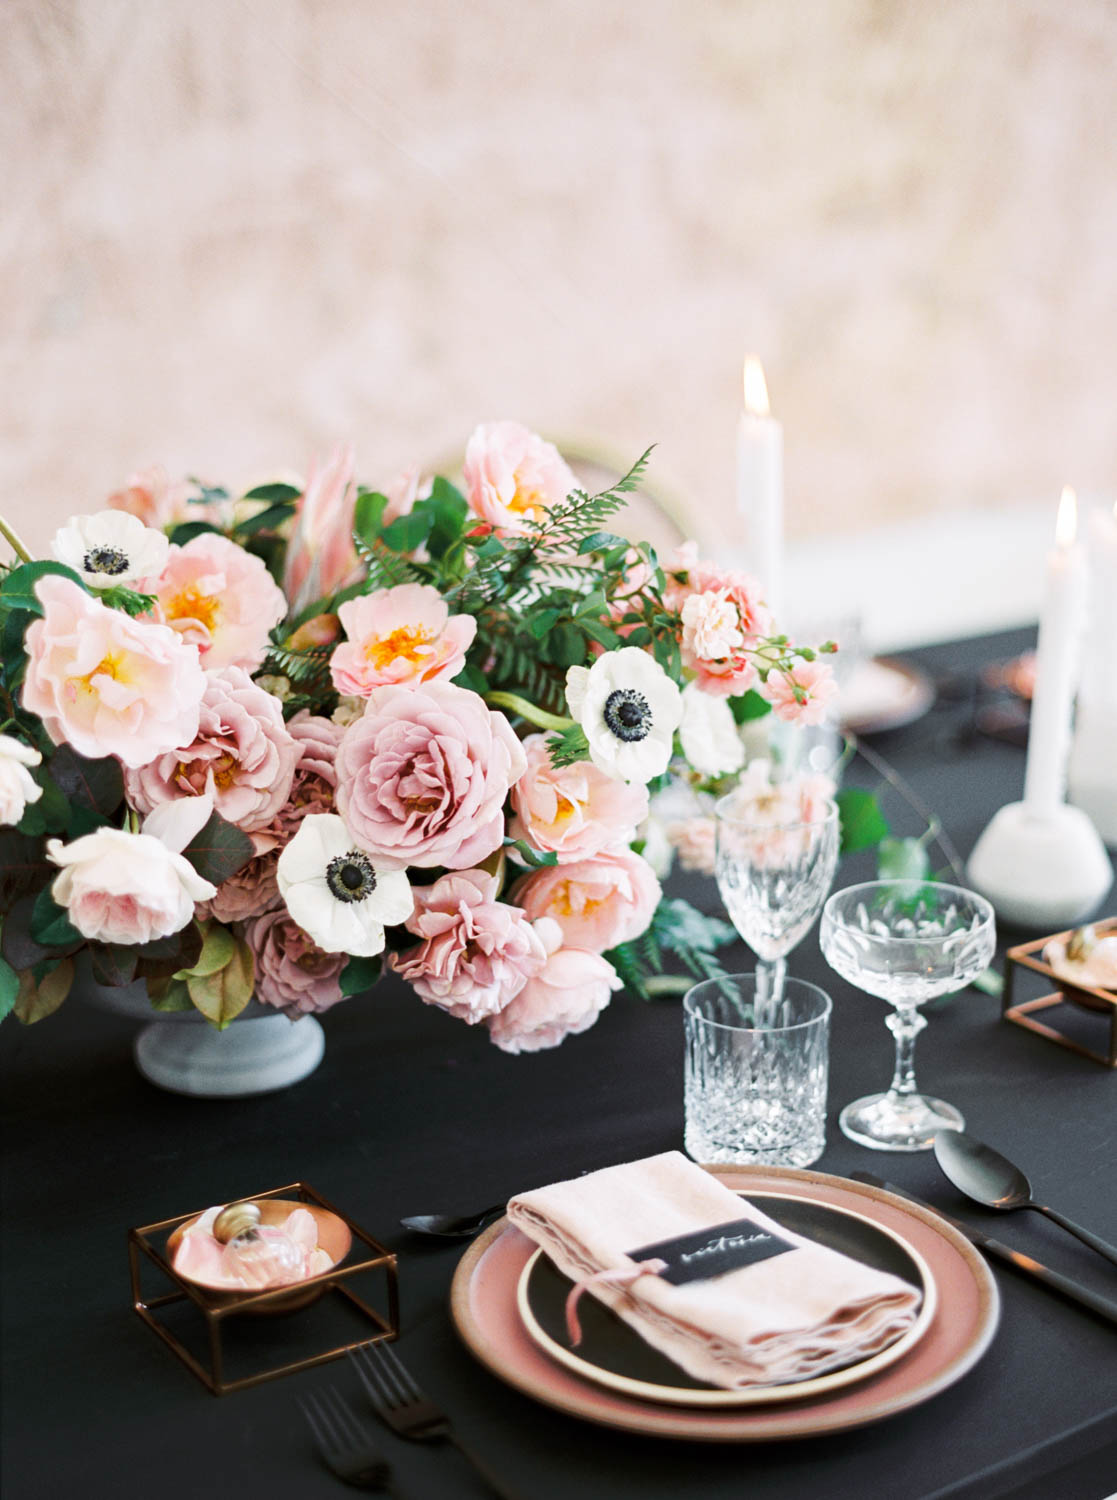 San Diego film wedding photo, Black pink and gold wedding inspiration or rehearsal dinner inspiration, Cavin Elizabeth and Amorology